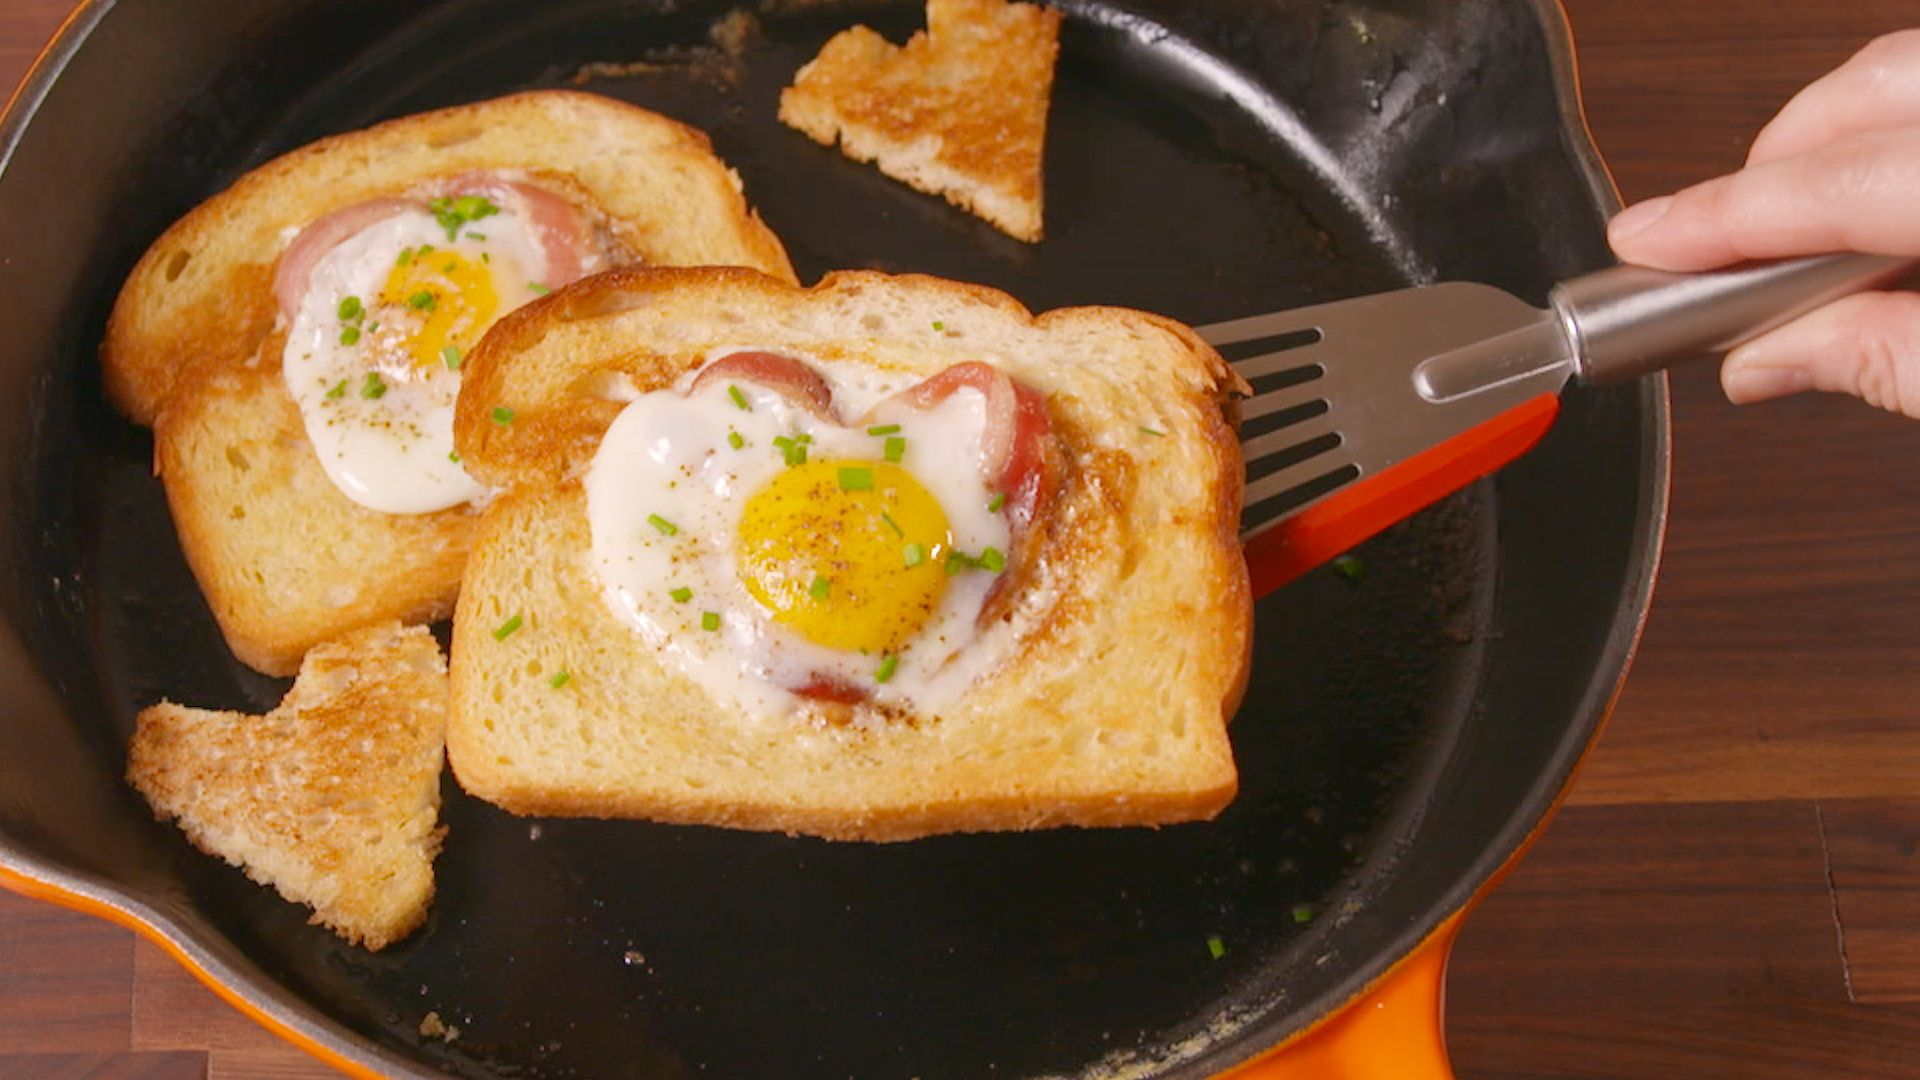 Best Heart Shaped Egg In A Hole How To Make Heart Shaped Egg In A Hole